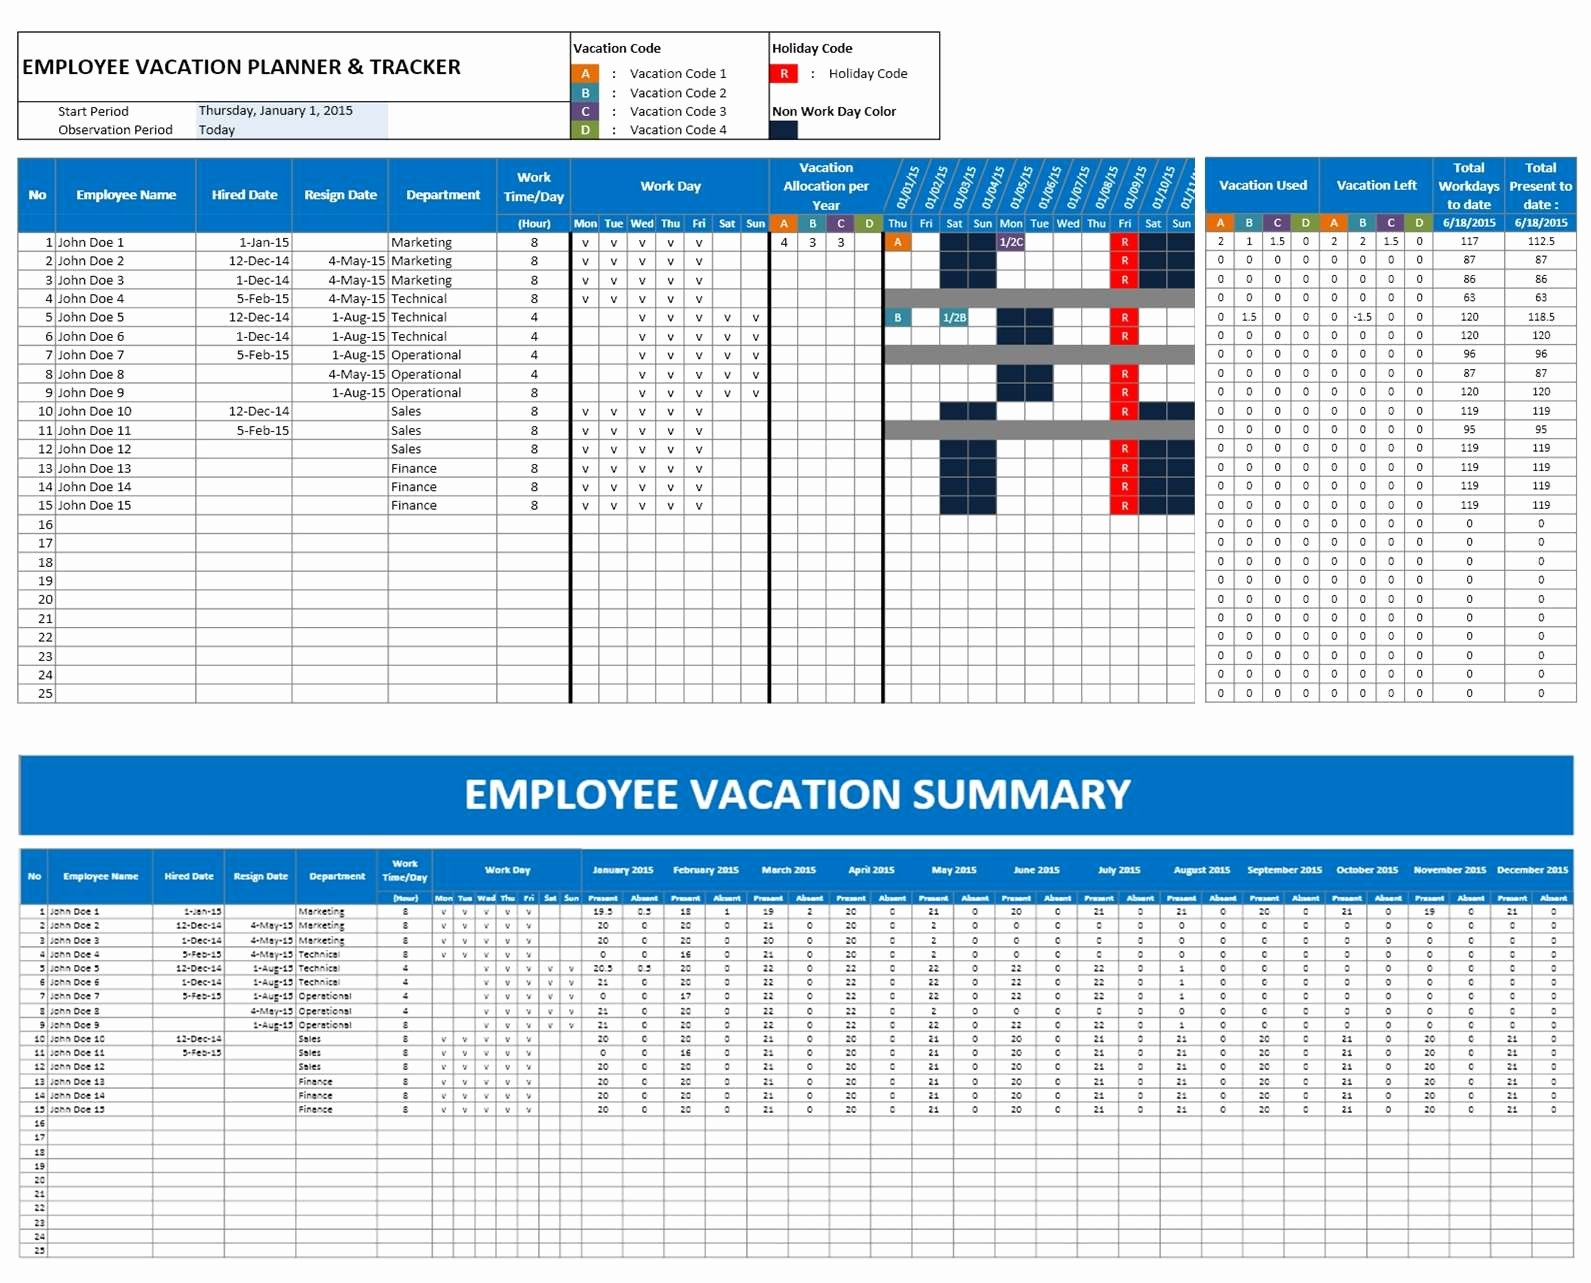 Leave Tracker Excel Template Luxury Employee Vacation Planner